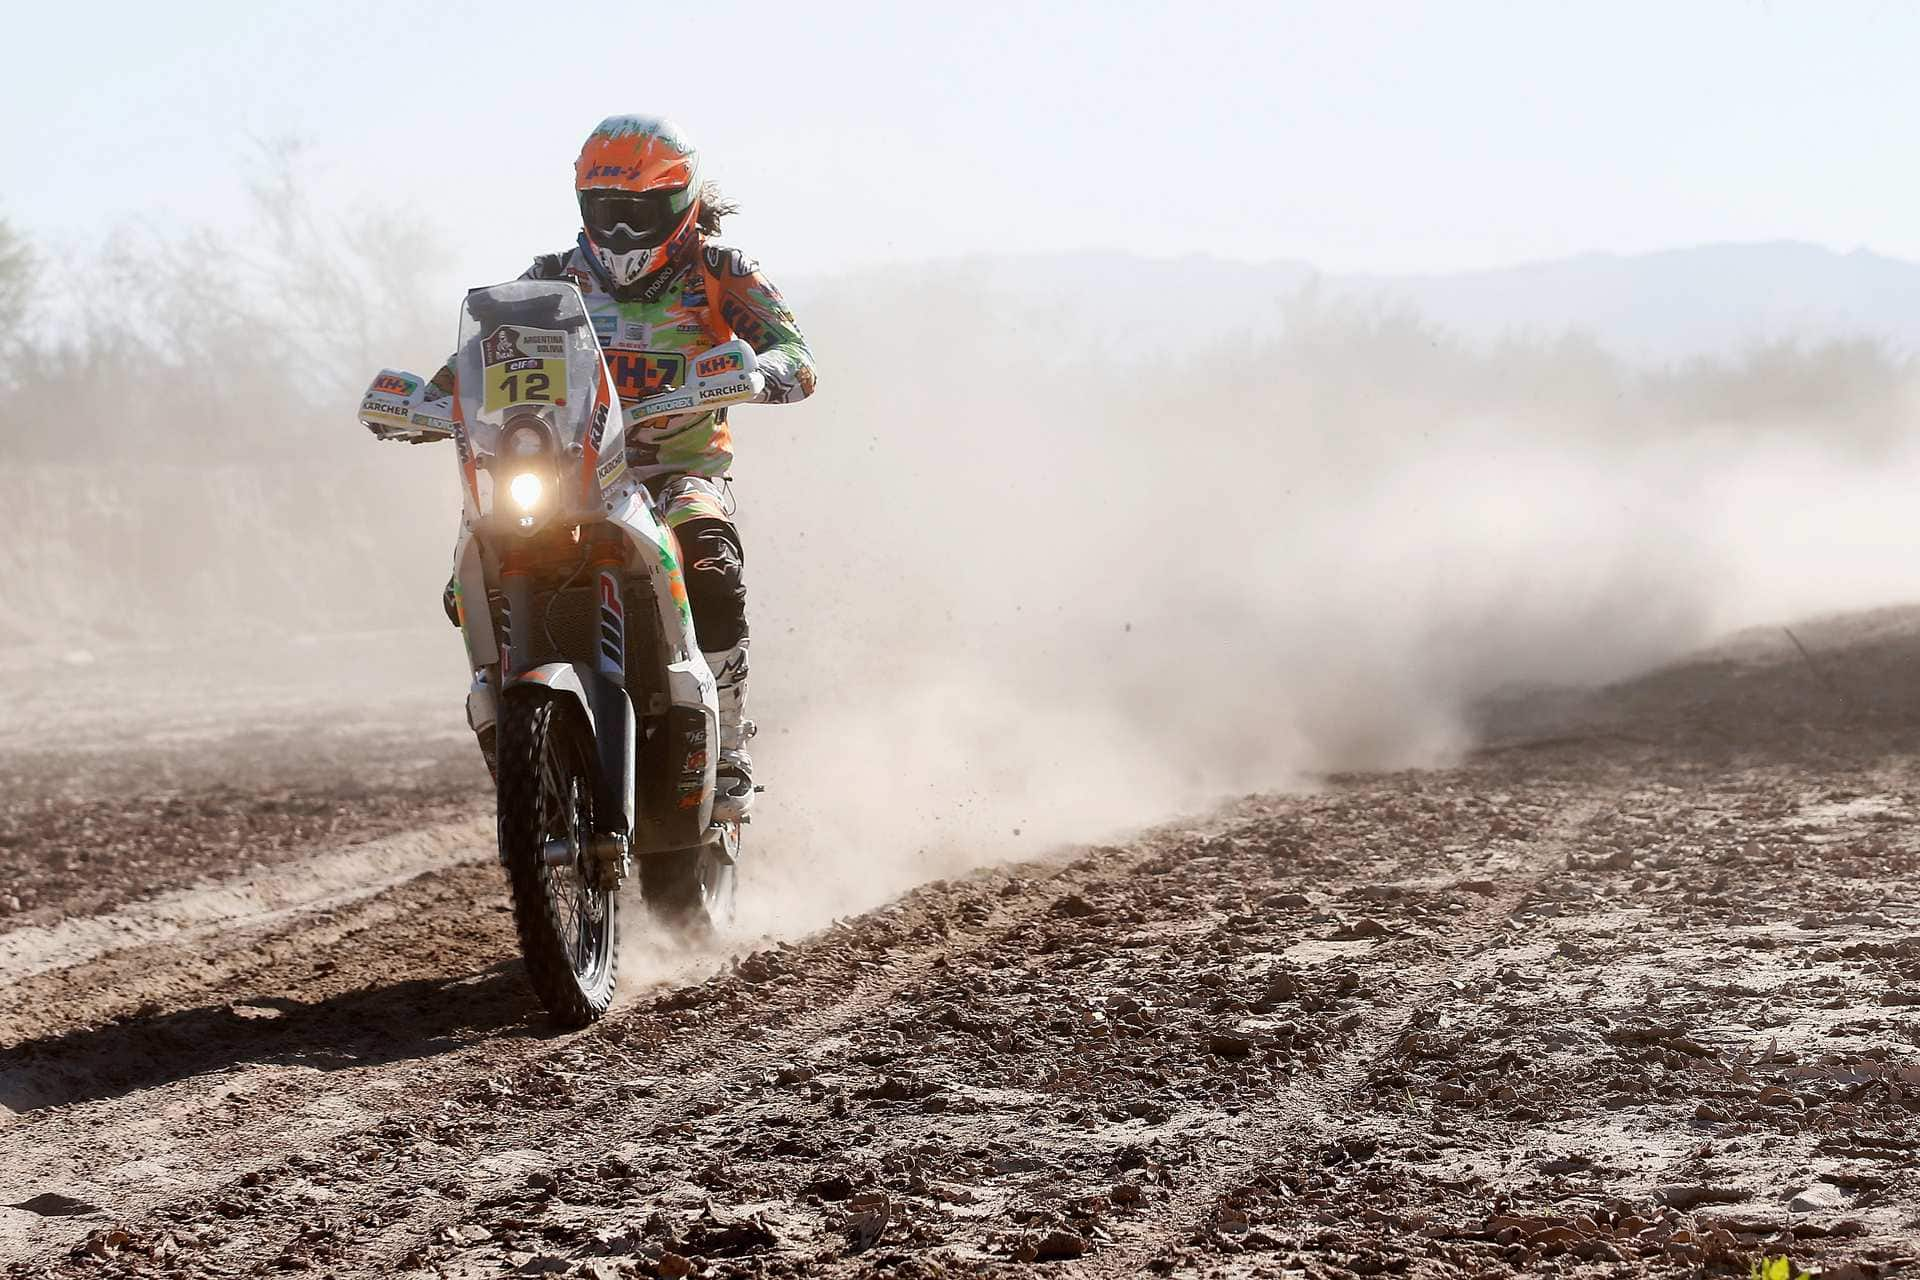 BELEN, ARGENTINA - JANUARY 12:  Laia Sanz of Spain riding on and for KTM 450 RALLY REPLICA KTM RACING TEAM competes on day 10 stage 9 during the 2016 Dakar Rally on January 12, 2016 in near Belen, Argentina.  (Photo by Dean Mouhtaropoulos/Getty Images)